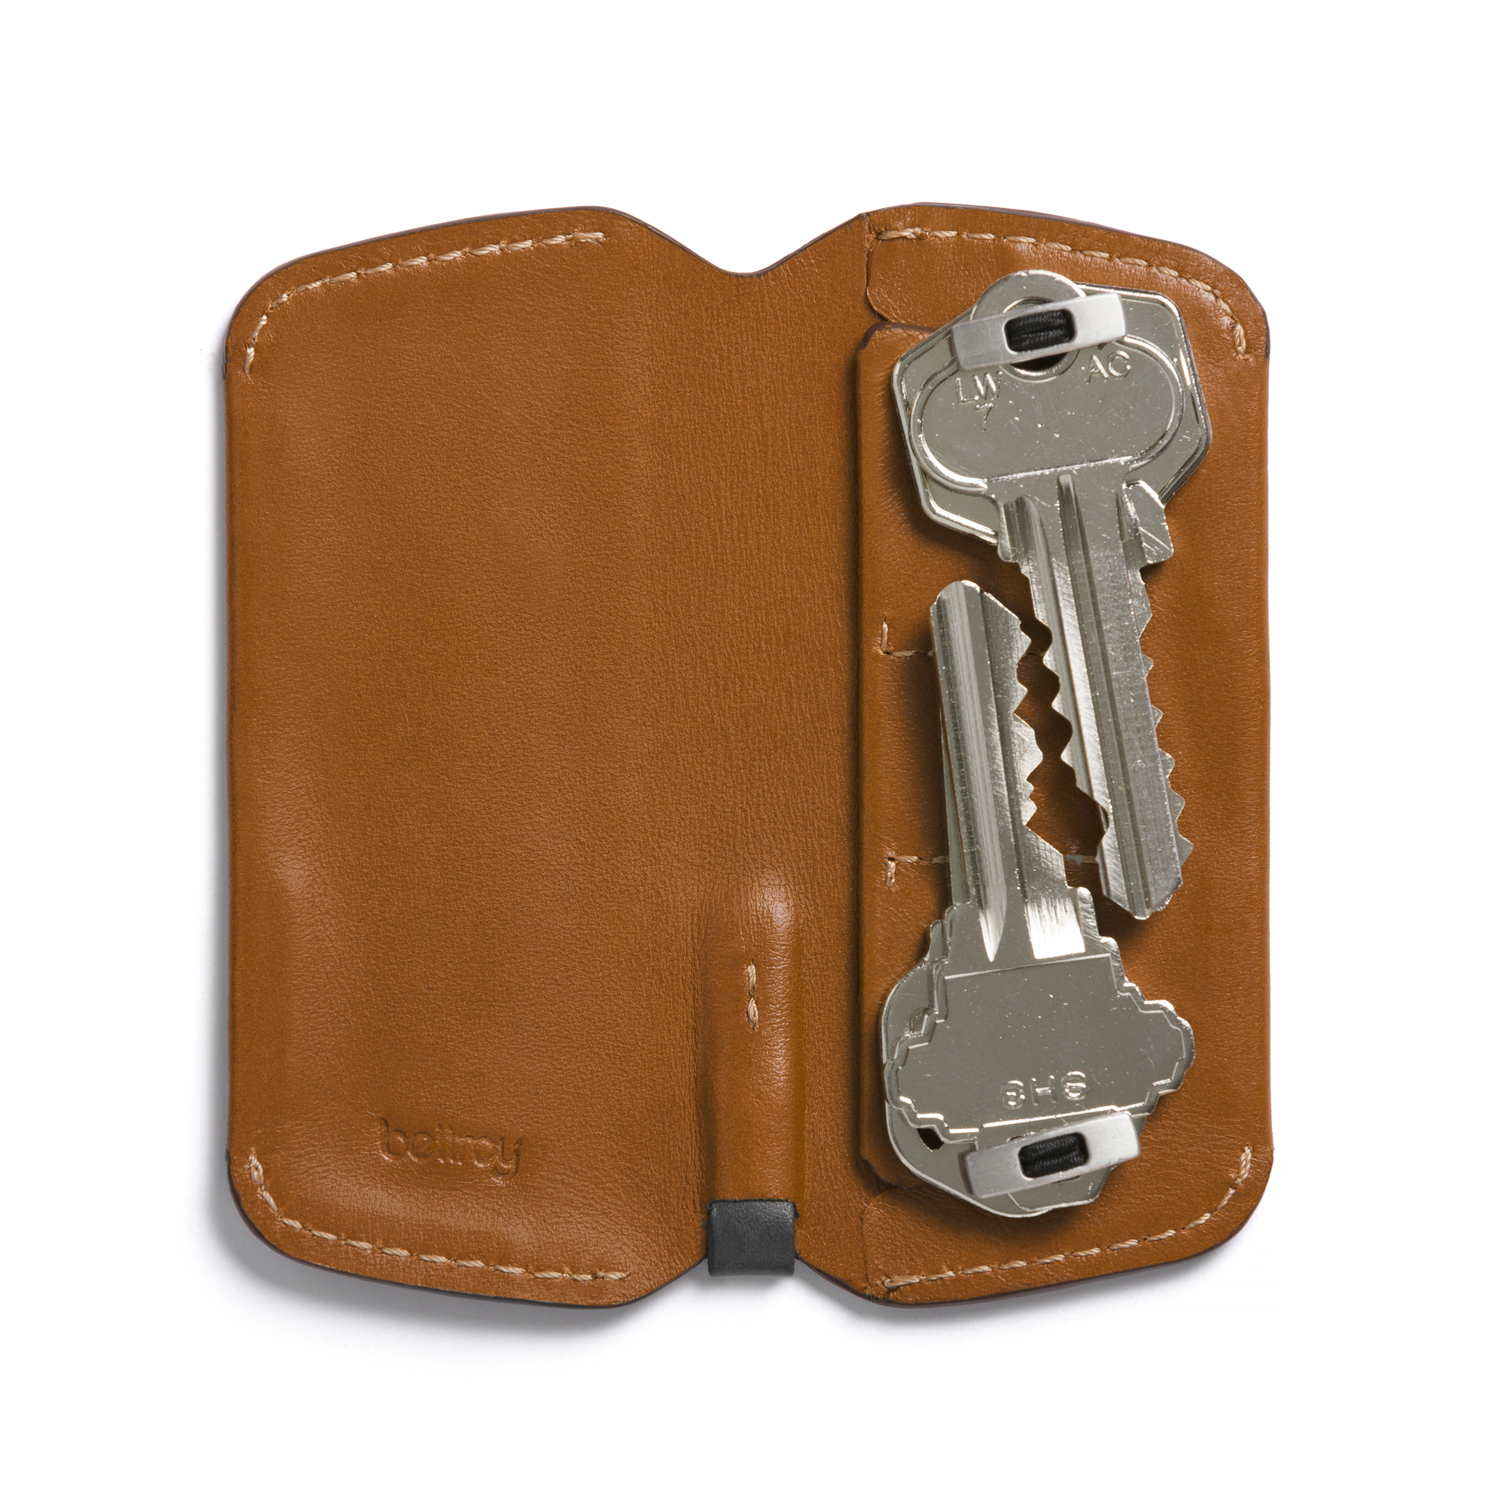 6786efddf49 Buy Bellroy Key Cover Plus - Caramel in Singapore   Malaysia - The Wallet  Shop